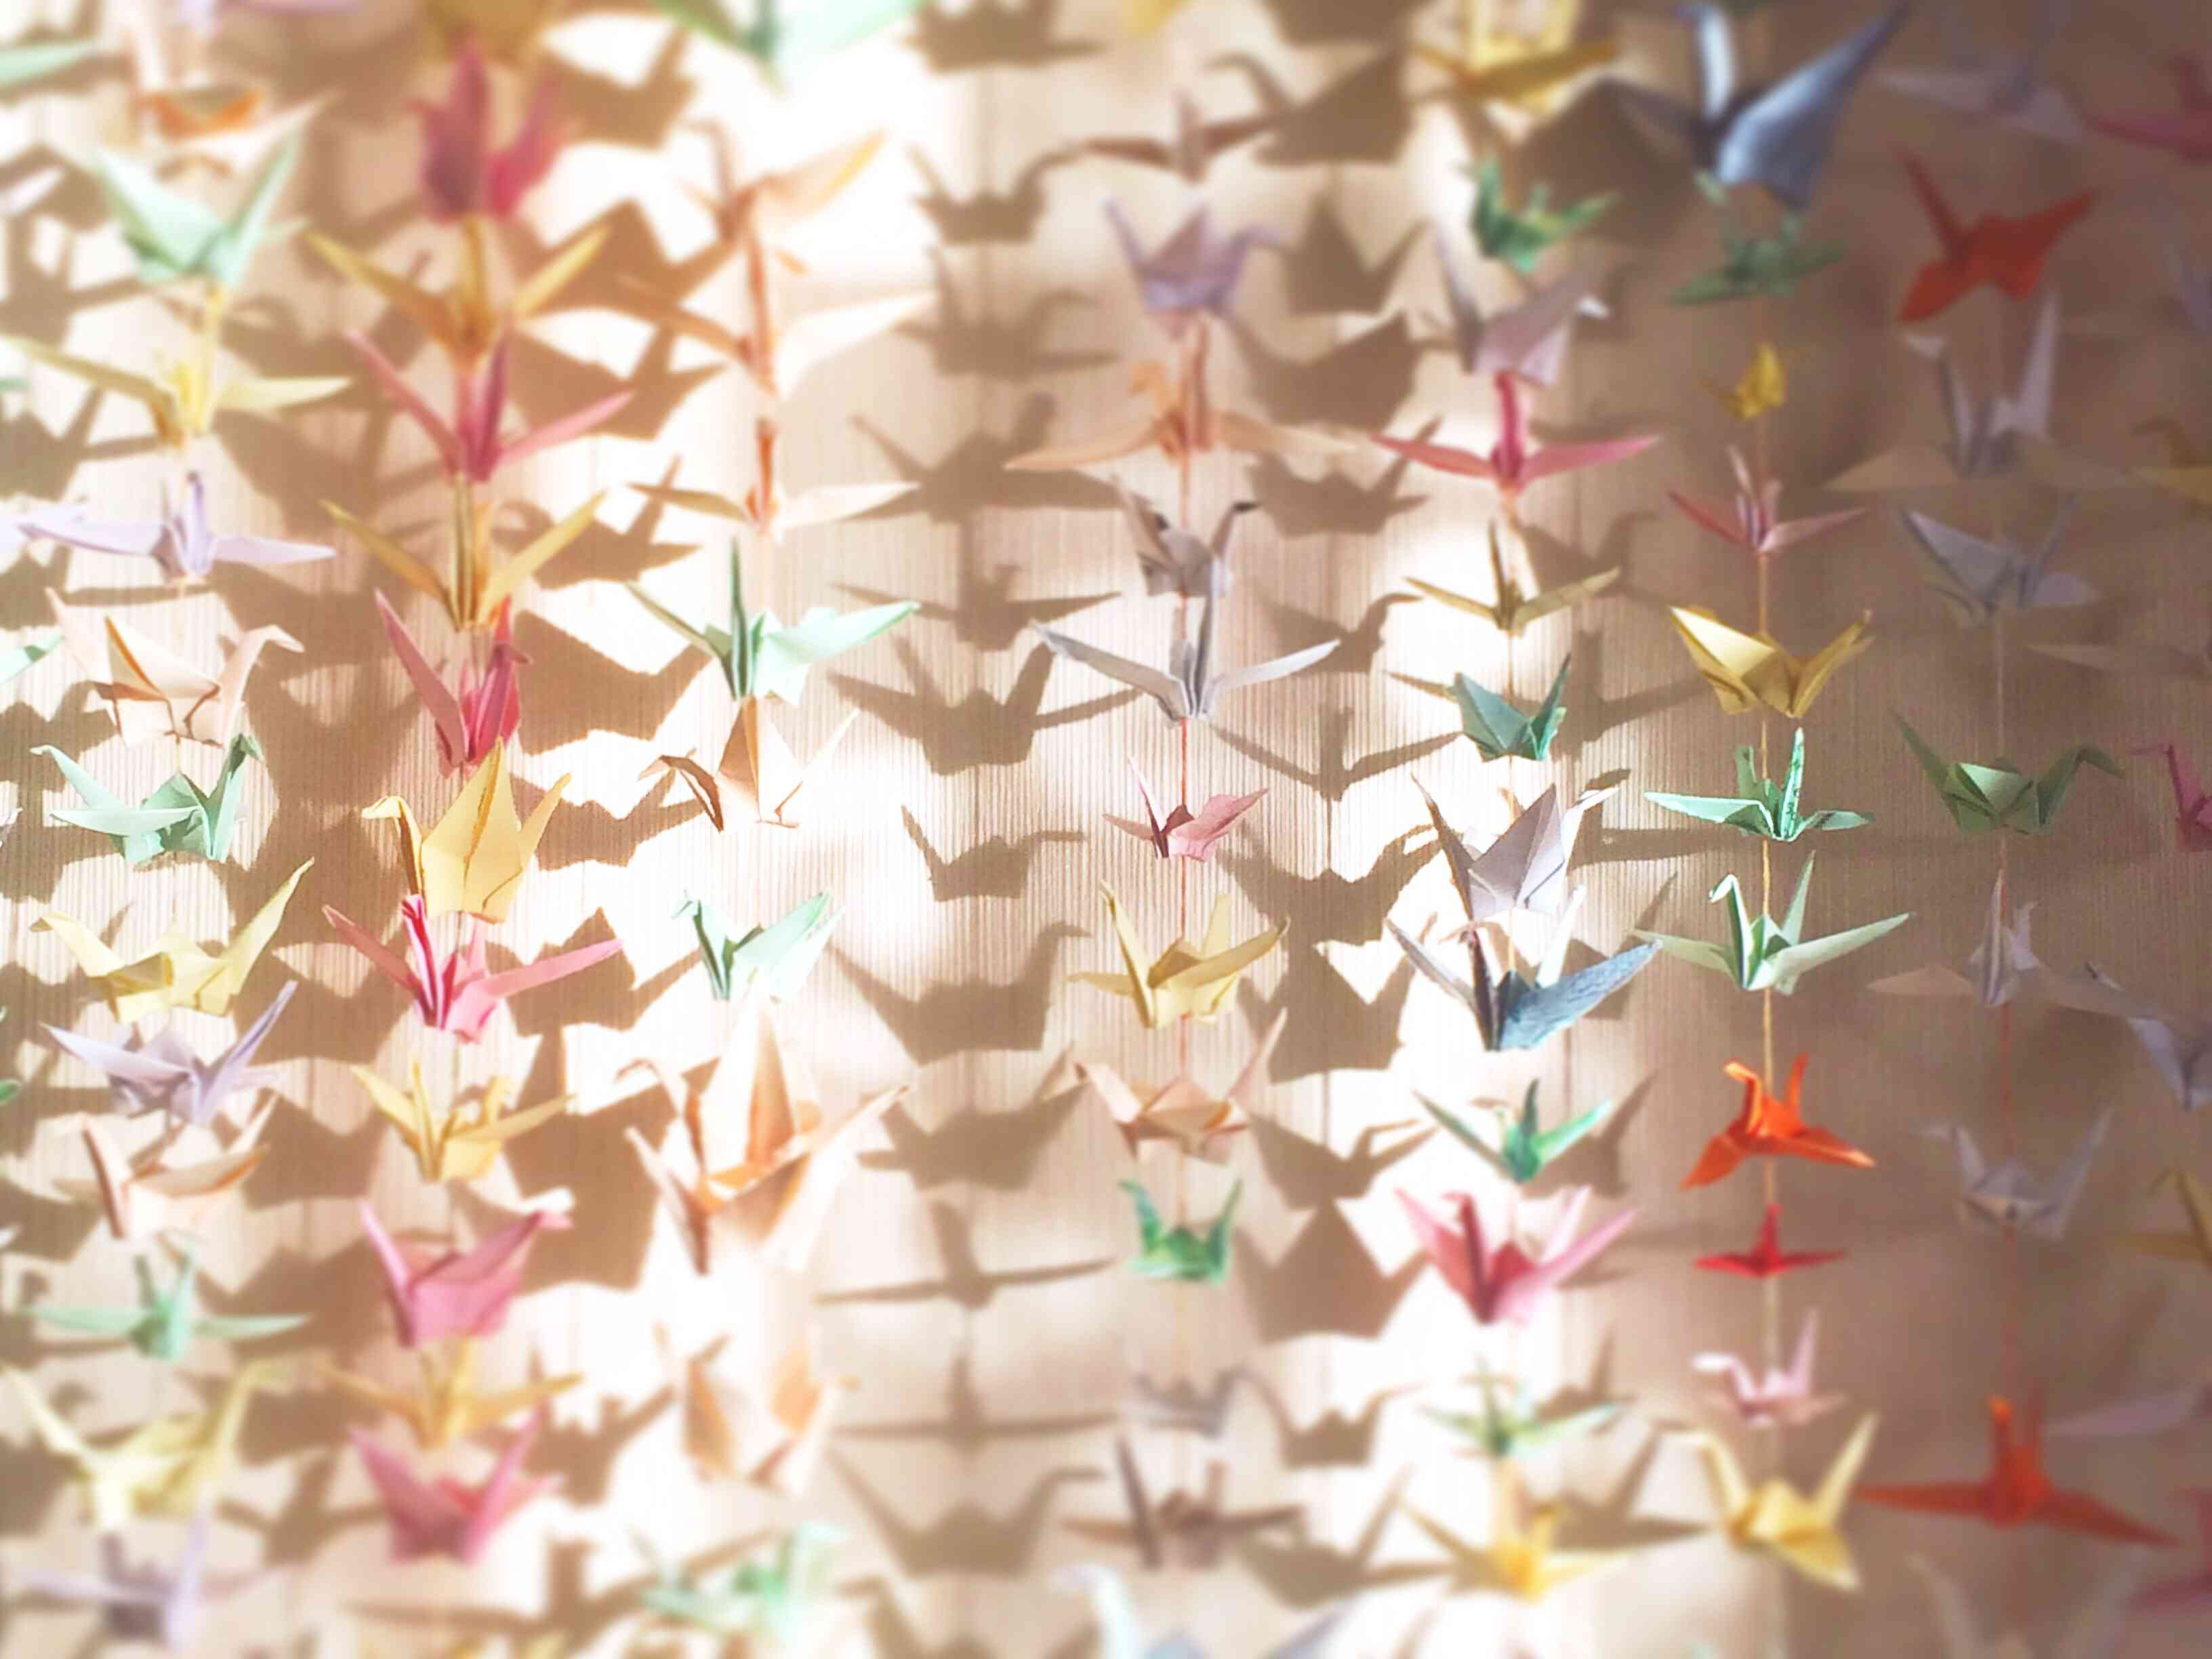 strings of origami cranes